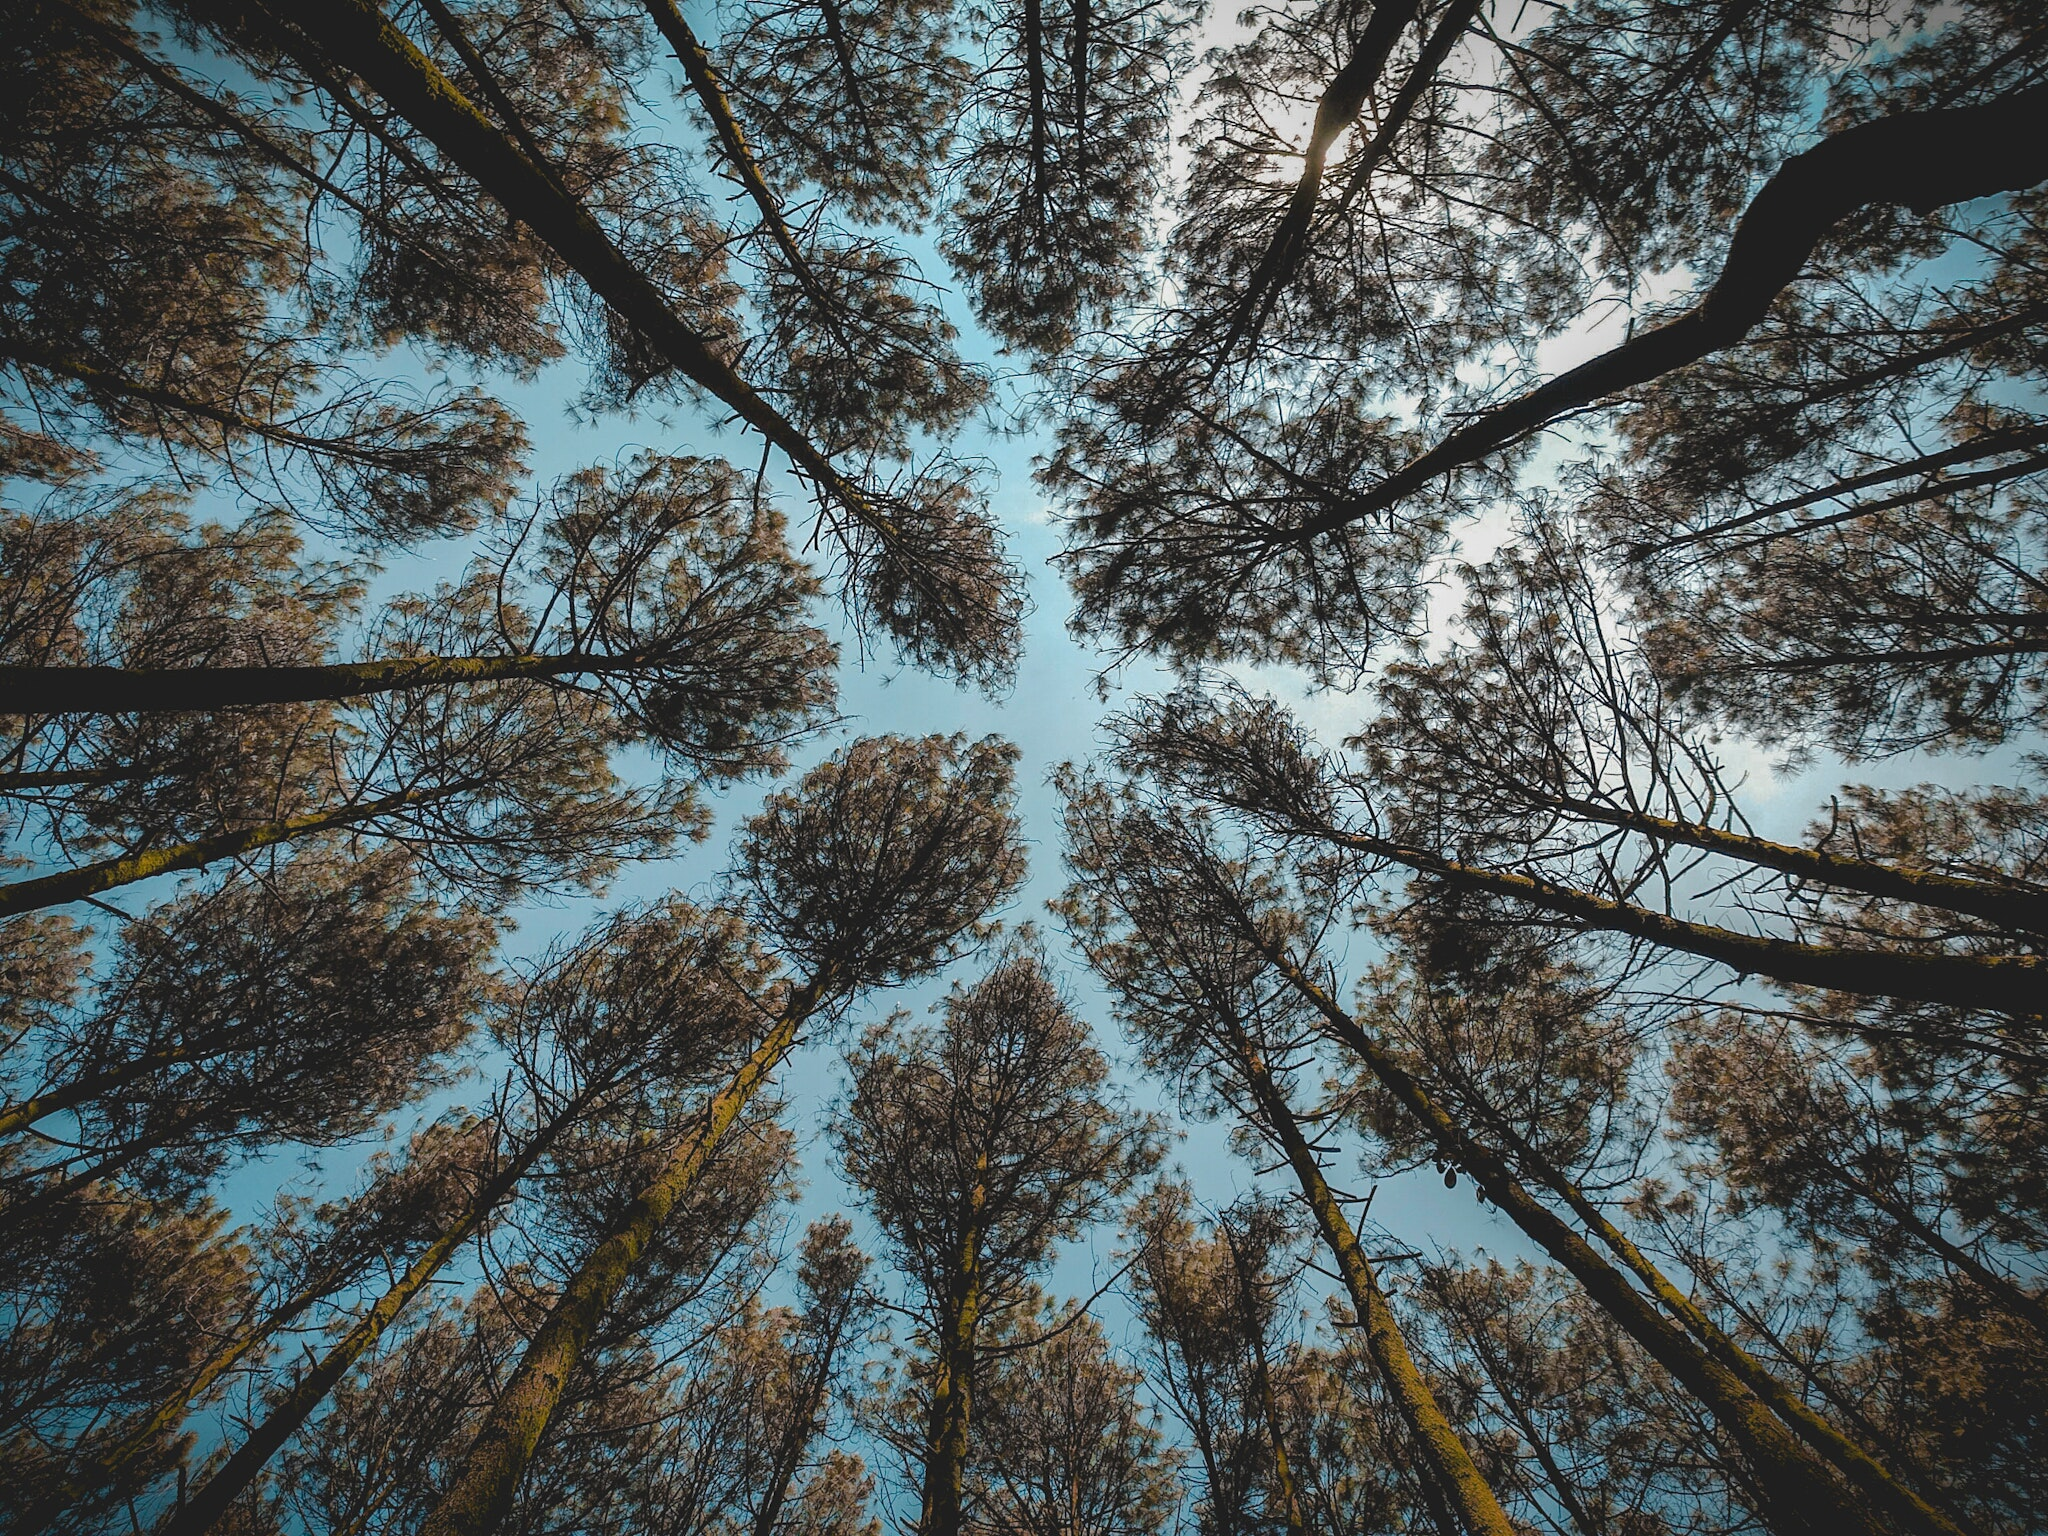 Low angle photography of brown leaf forest trees at daytime